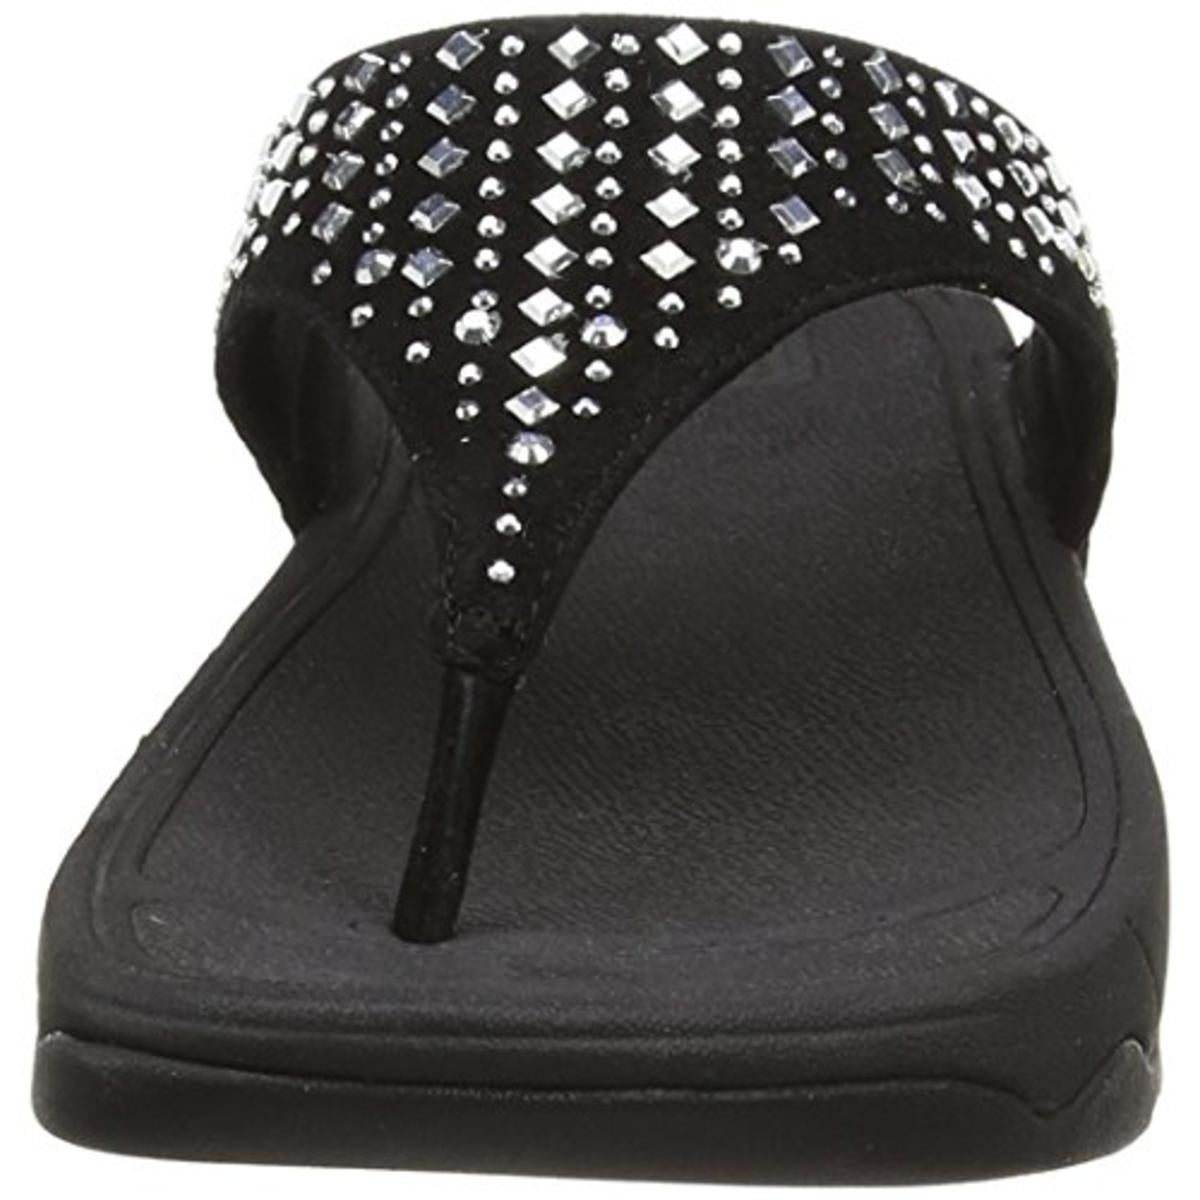 86ce6be5e Shop Fitflop Womens Novy Slide Sandals Rhinestones Thong - Free Shipping  Today - Overstock - 18612318